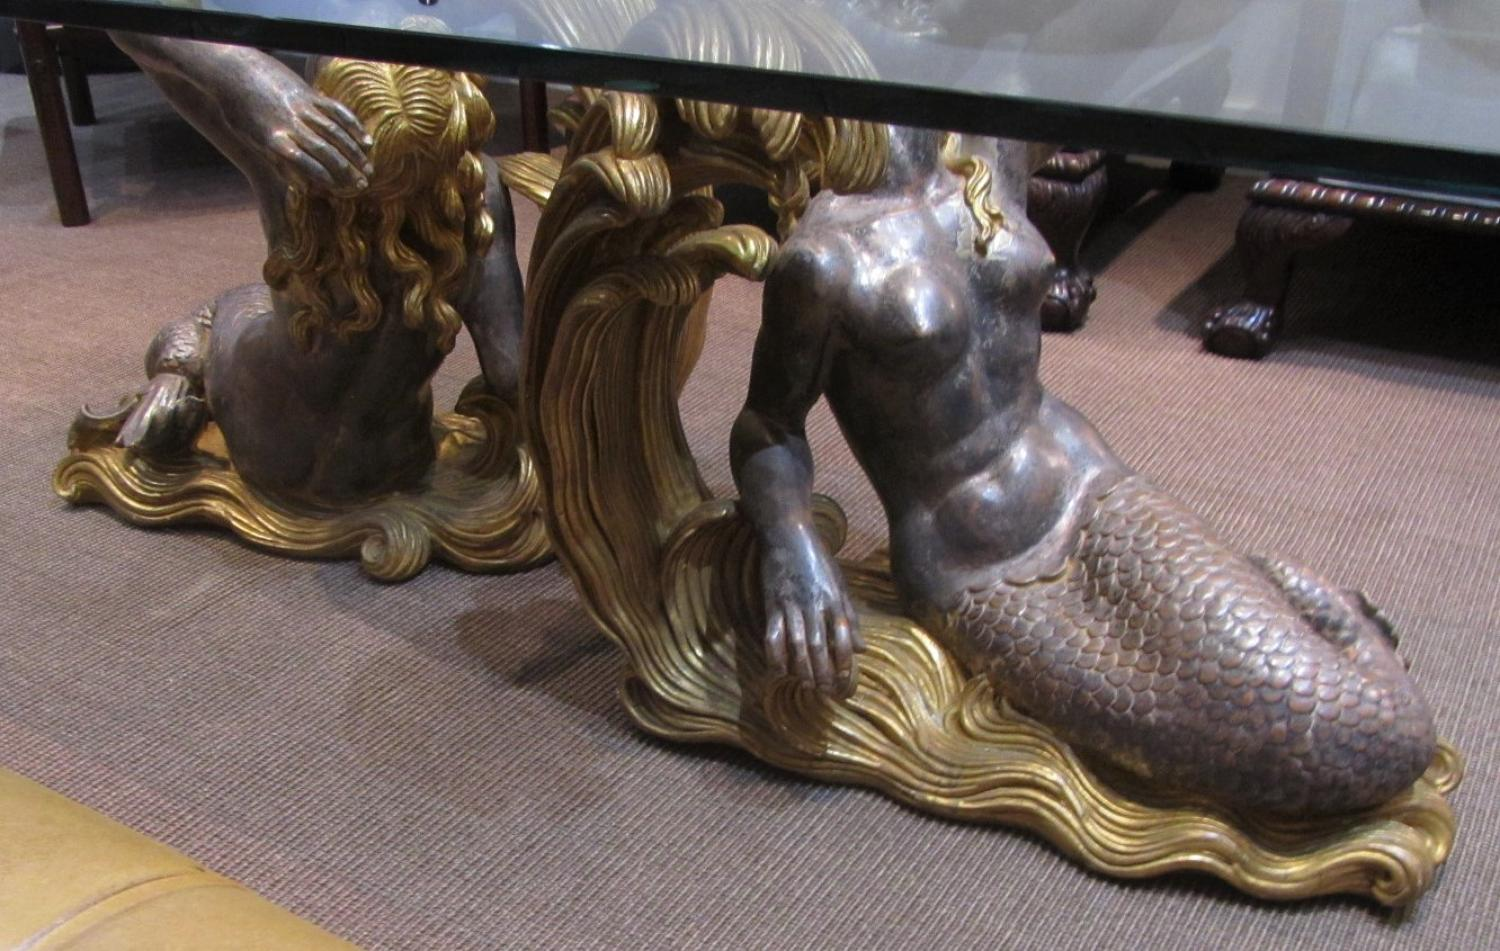 A mid century mermaid coffee table 10462 pic9 size3 for Mermaid coffee table